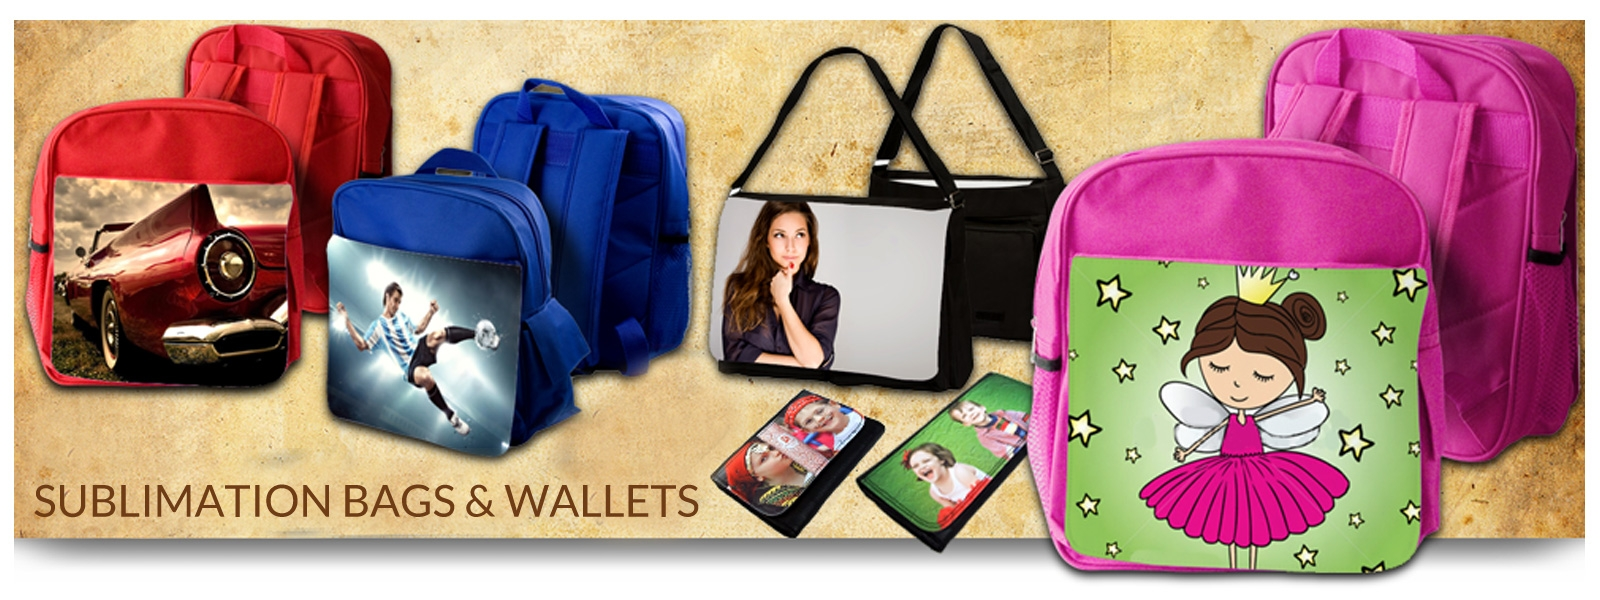 Sublimation Bags & Wallets